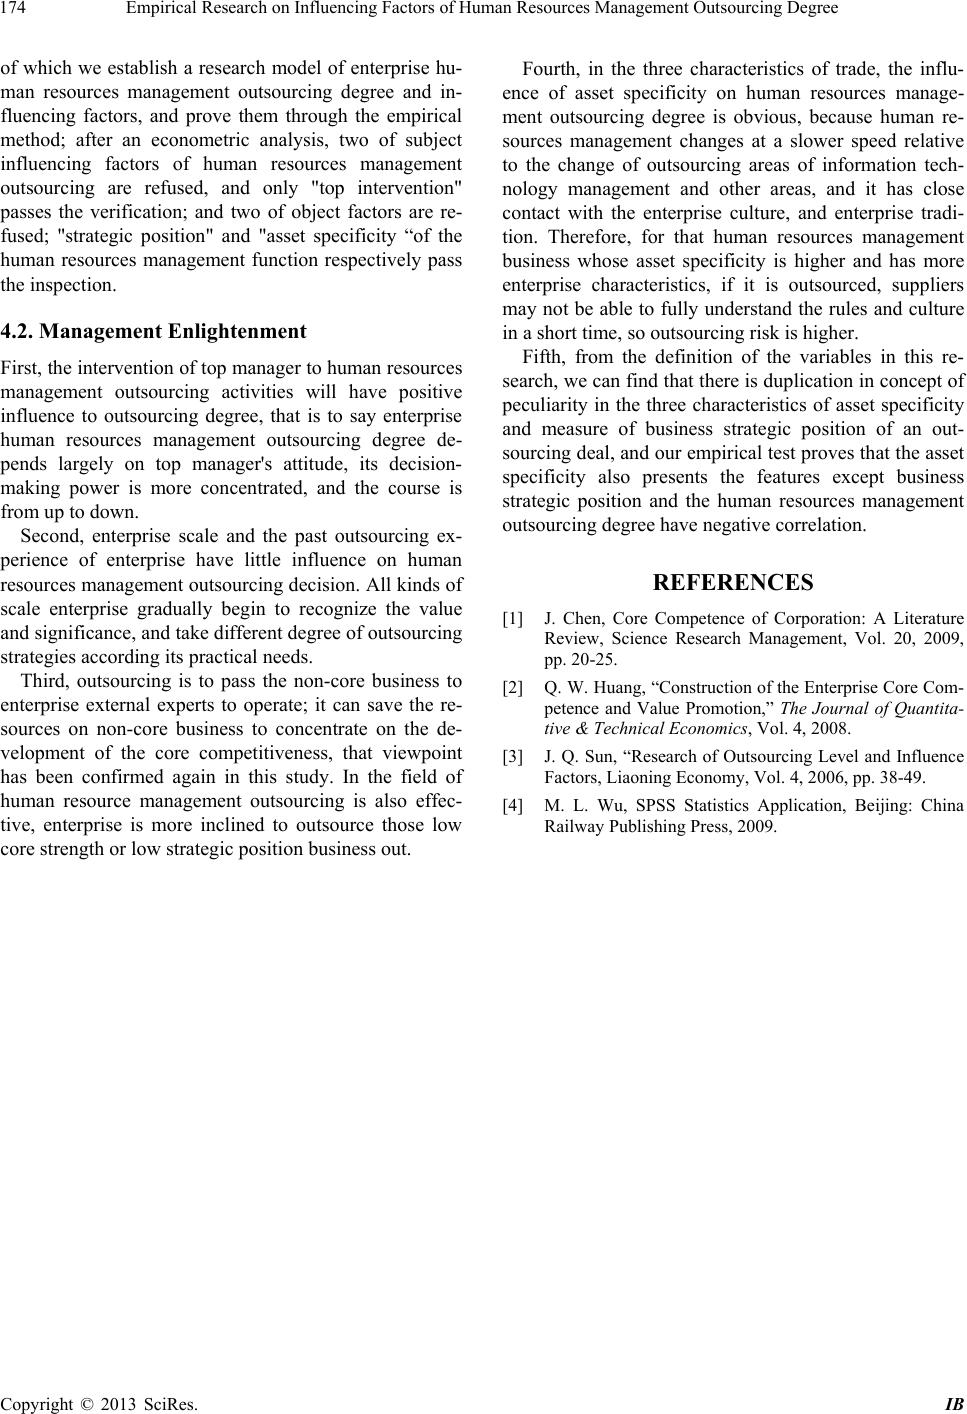 Hr related topics management thesis